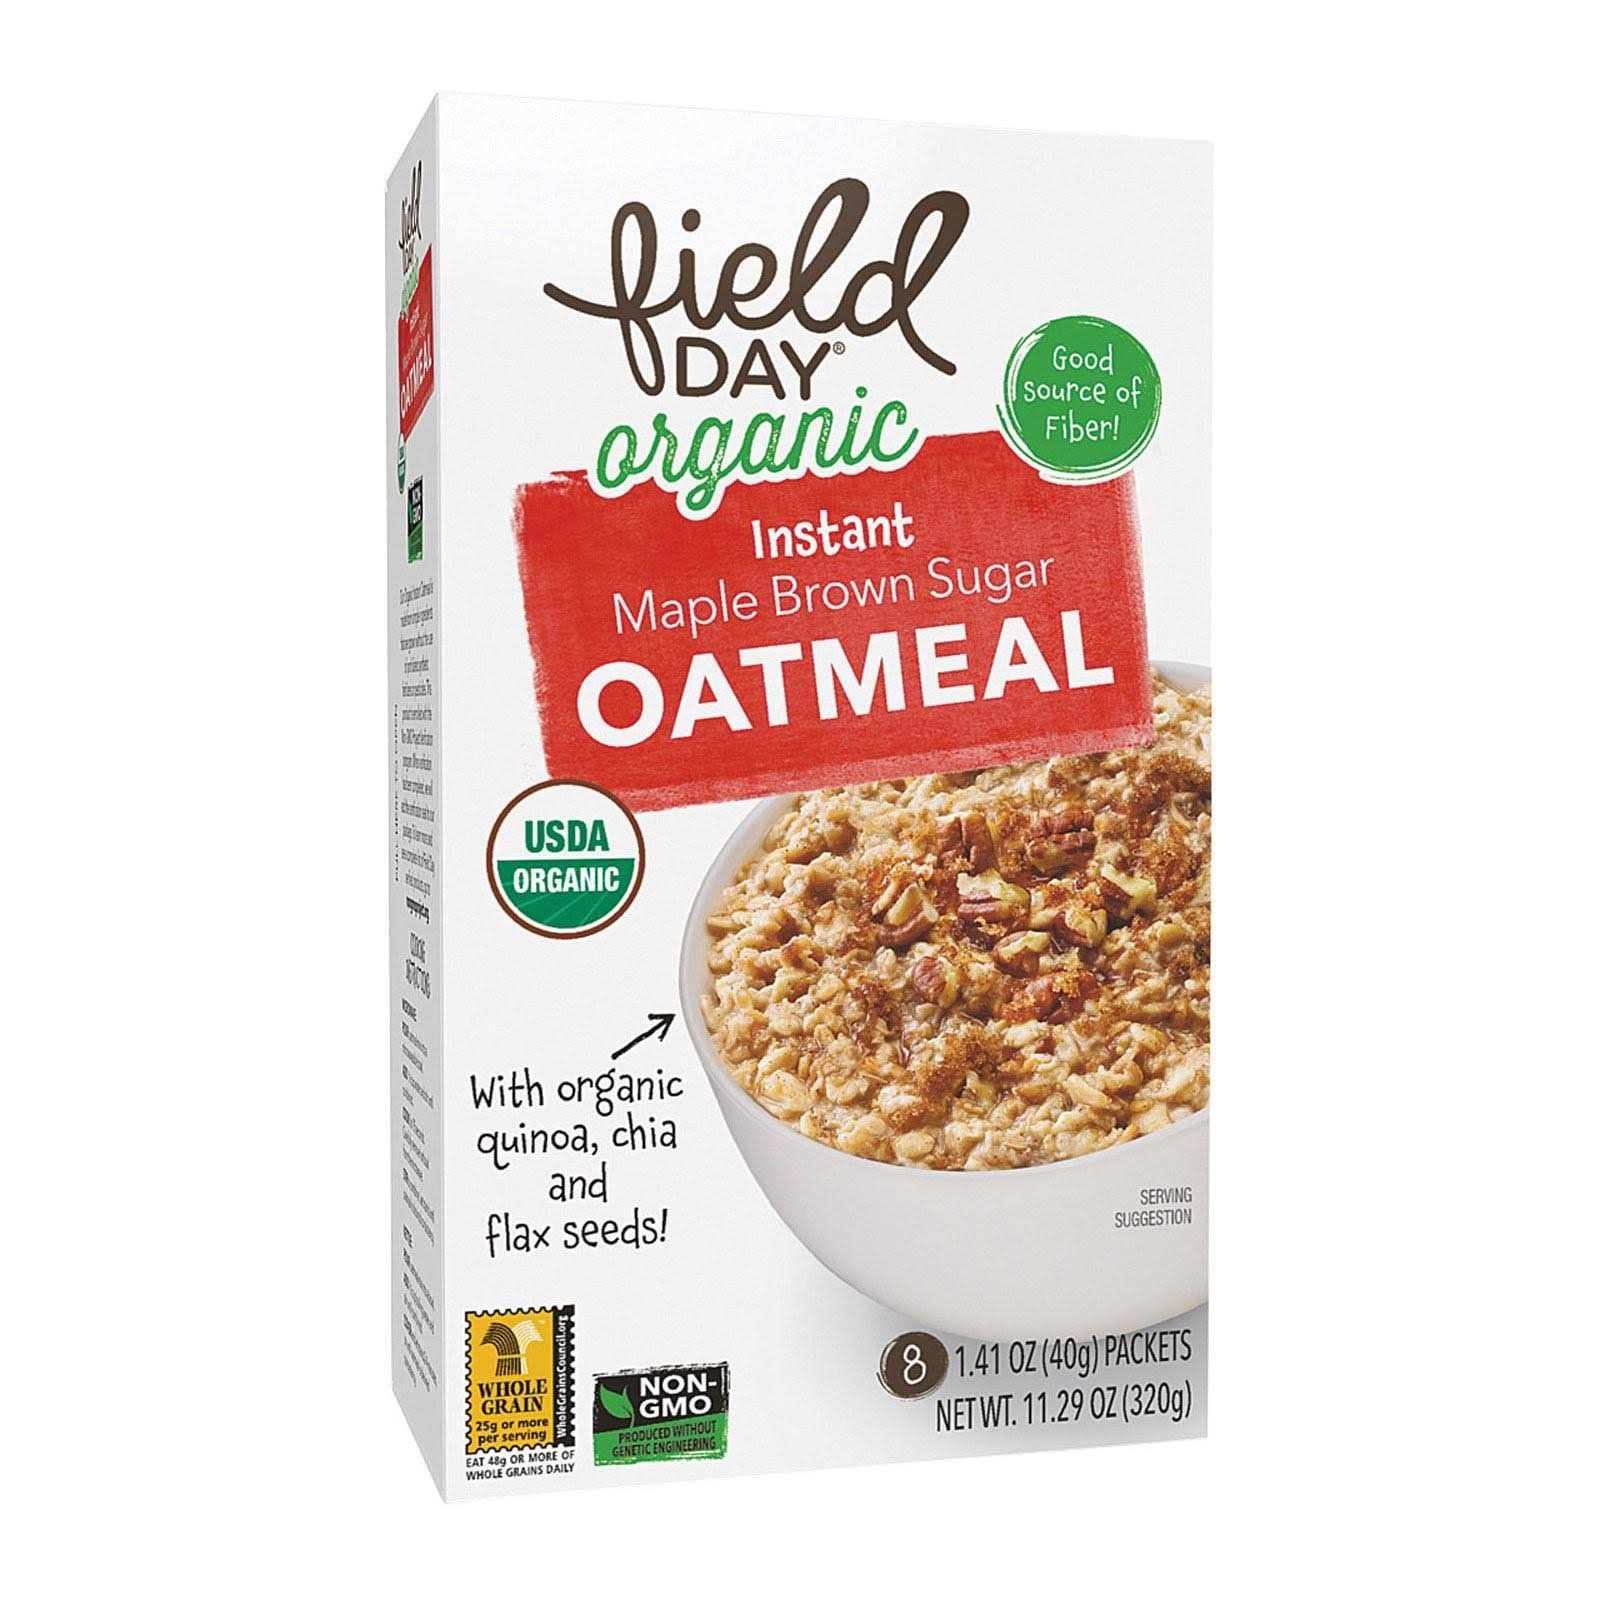 Field Day Organic Instant Maple Brown Sugar Oatmeal - Oatmeal - 11.29 Oz. - Case Of 6